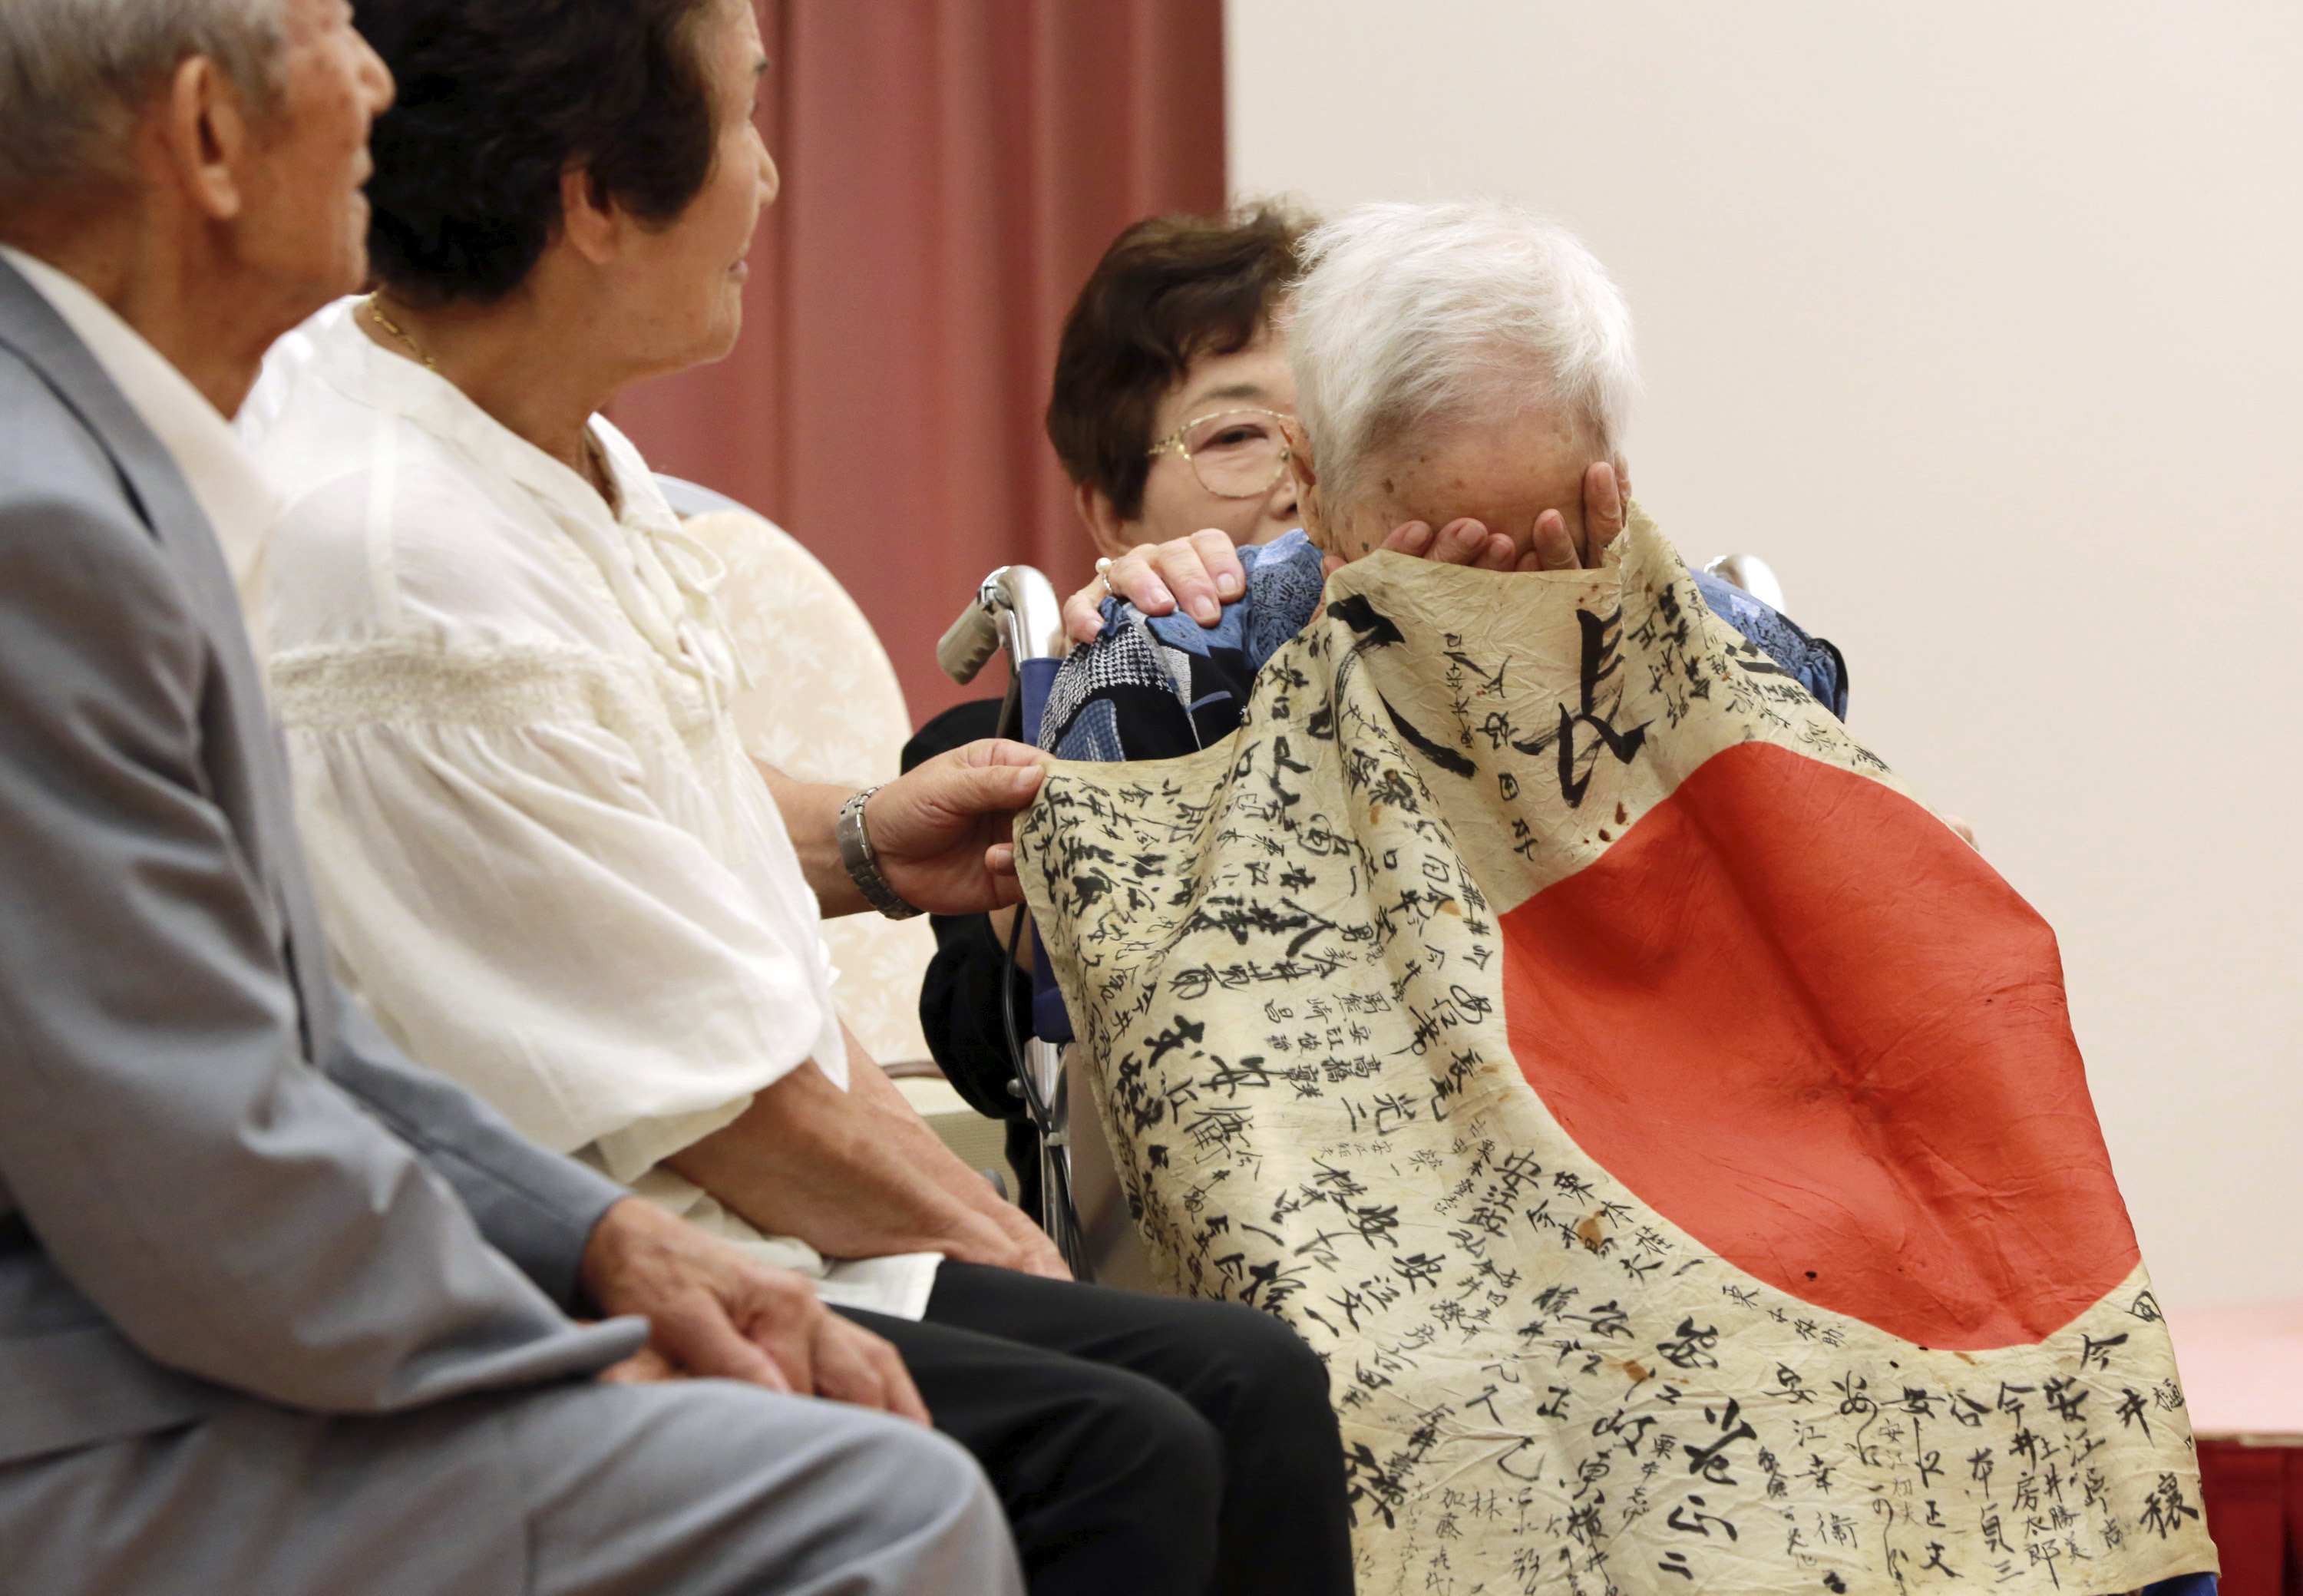 Sayoko Furuta, right, 93, reacts as she is covered with a Japanese flag with autographed messages which was owned by her brother Sadao Yasue, who was killed in the Pacific during World Work II, during a ceremony in Higashishirakawa, in central Japan's Gifu prefecture Tuesday, Aug. 15, 2017. (Eugene Hoshiko/AP)